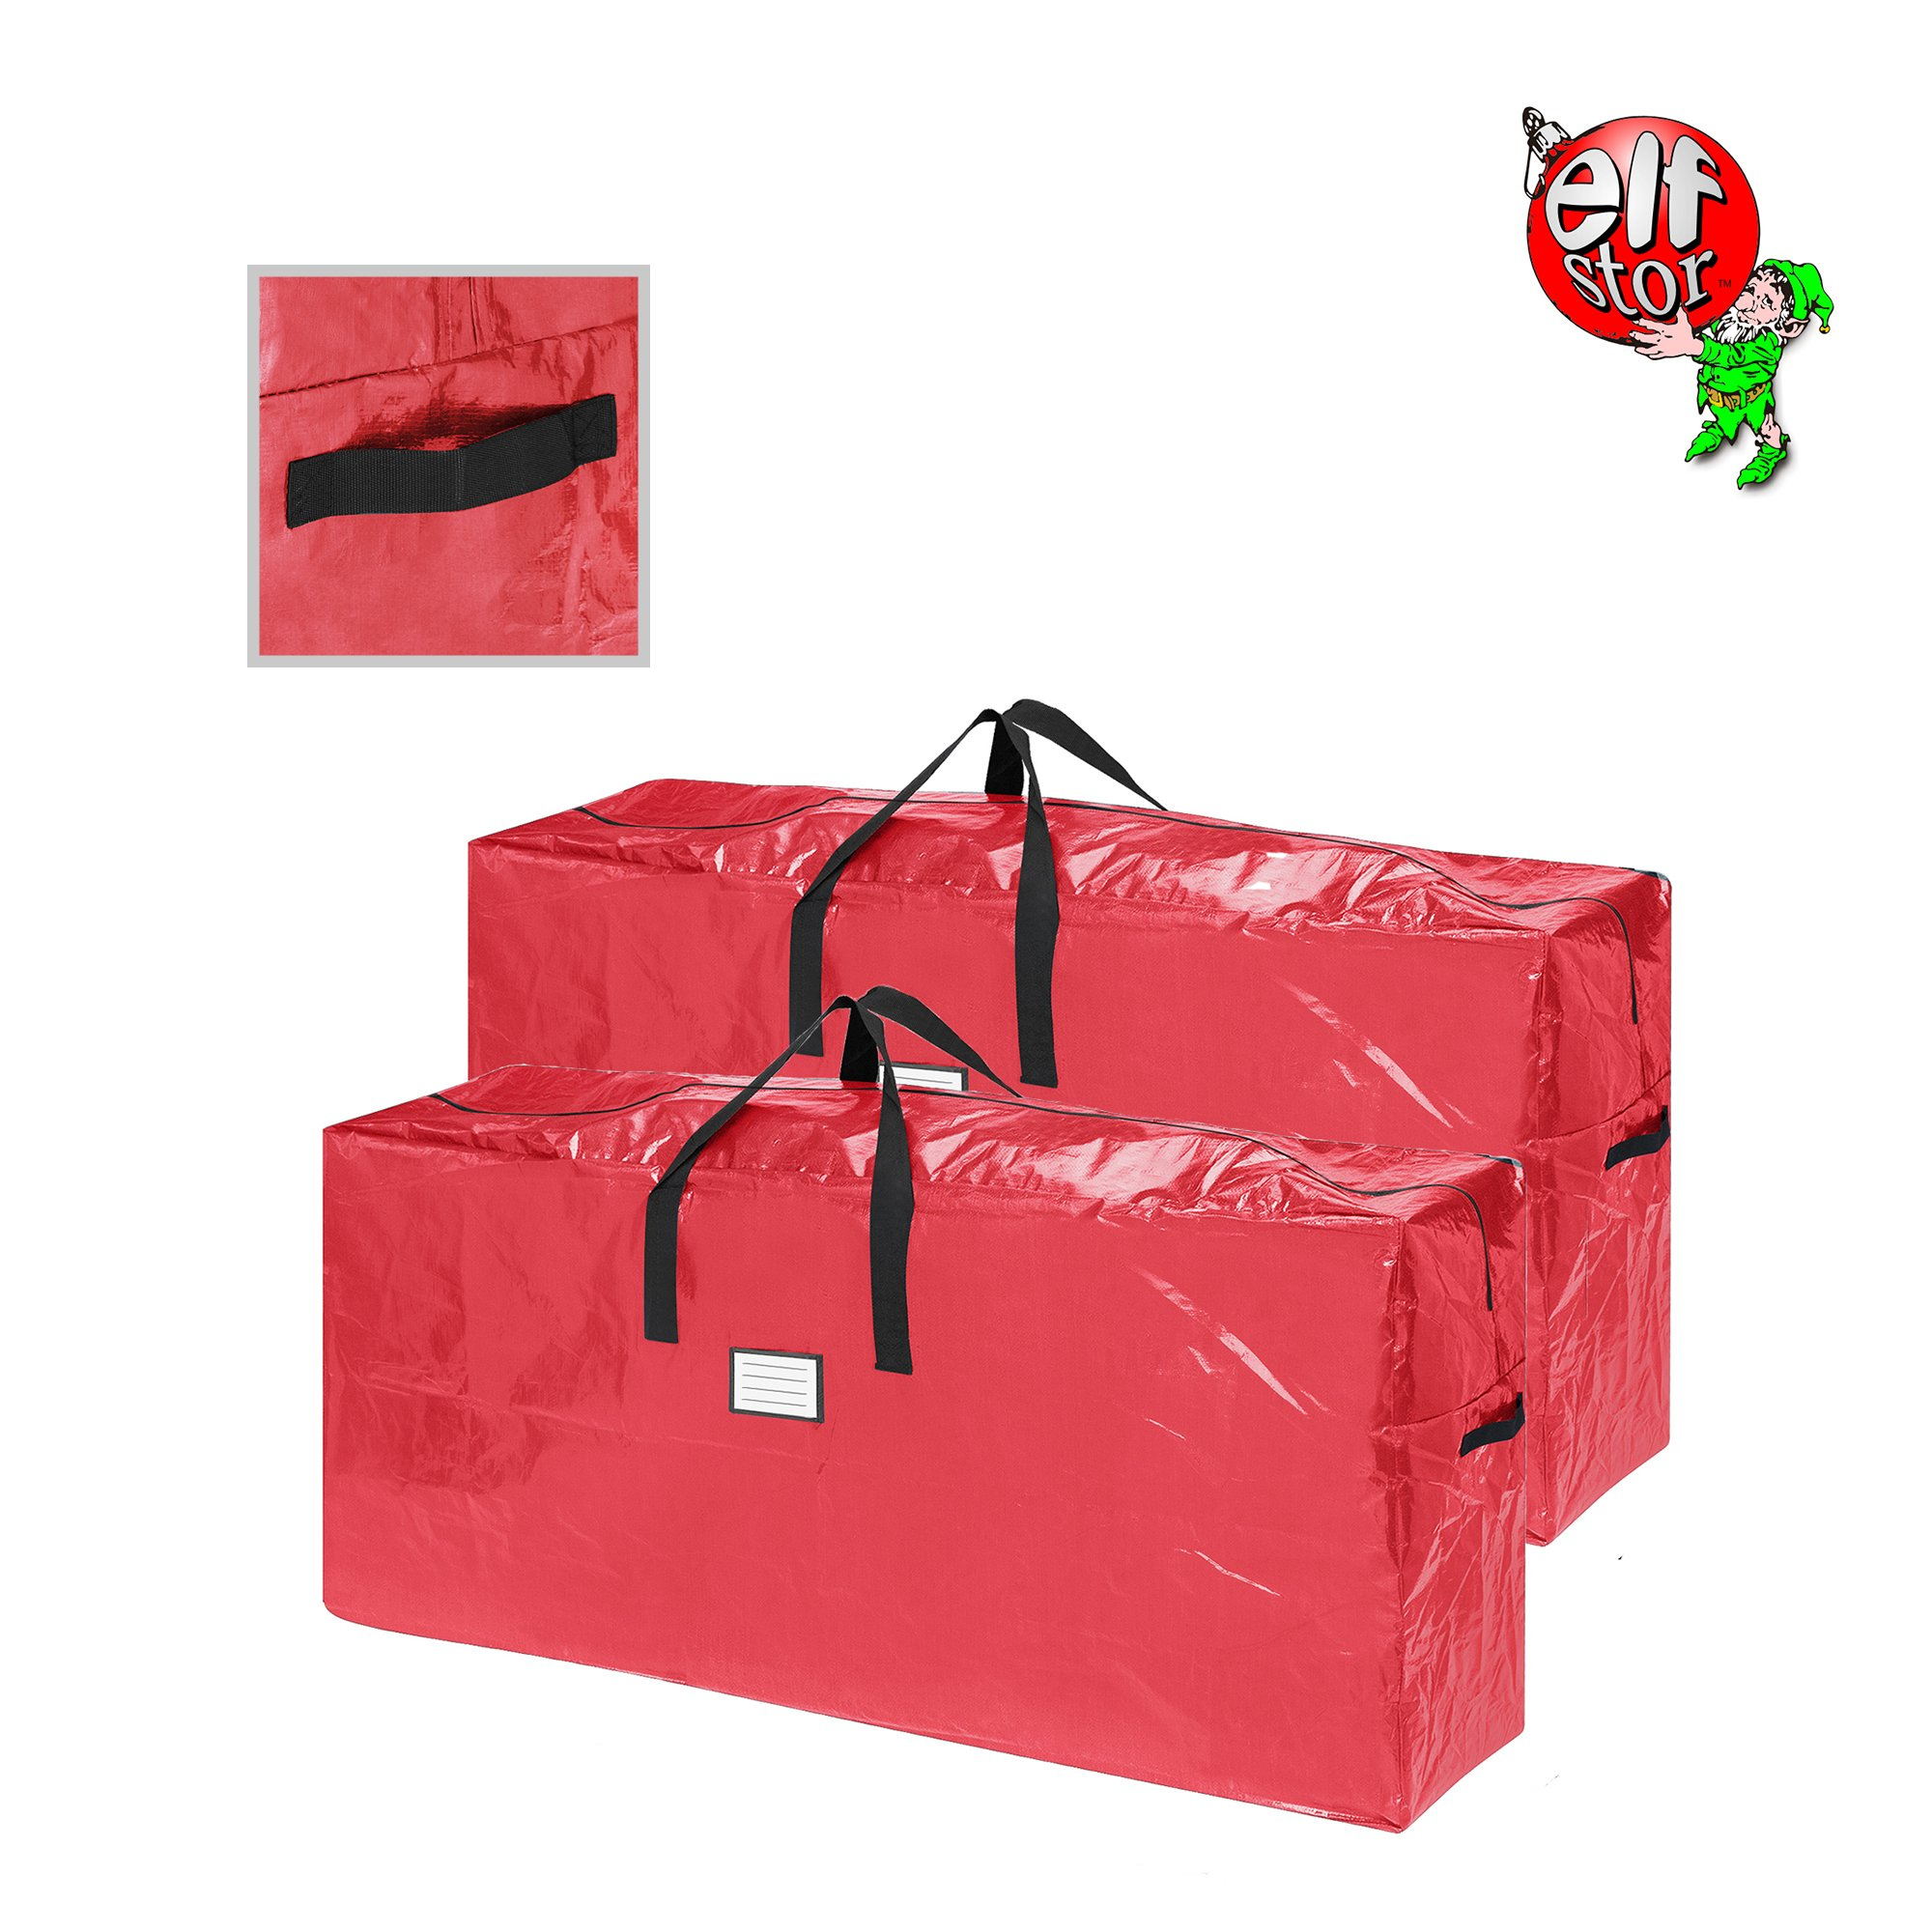 Elf Stor 83-DT5517 2-Pack | Christmas Bag | Extra Large for up to 9 Ft Tree | Red